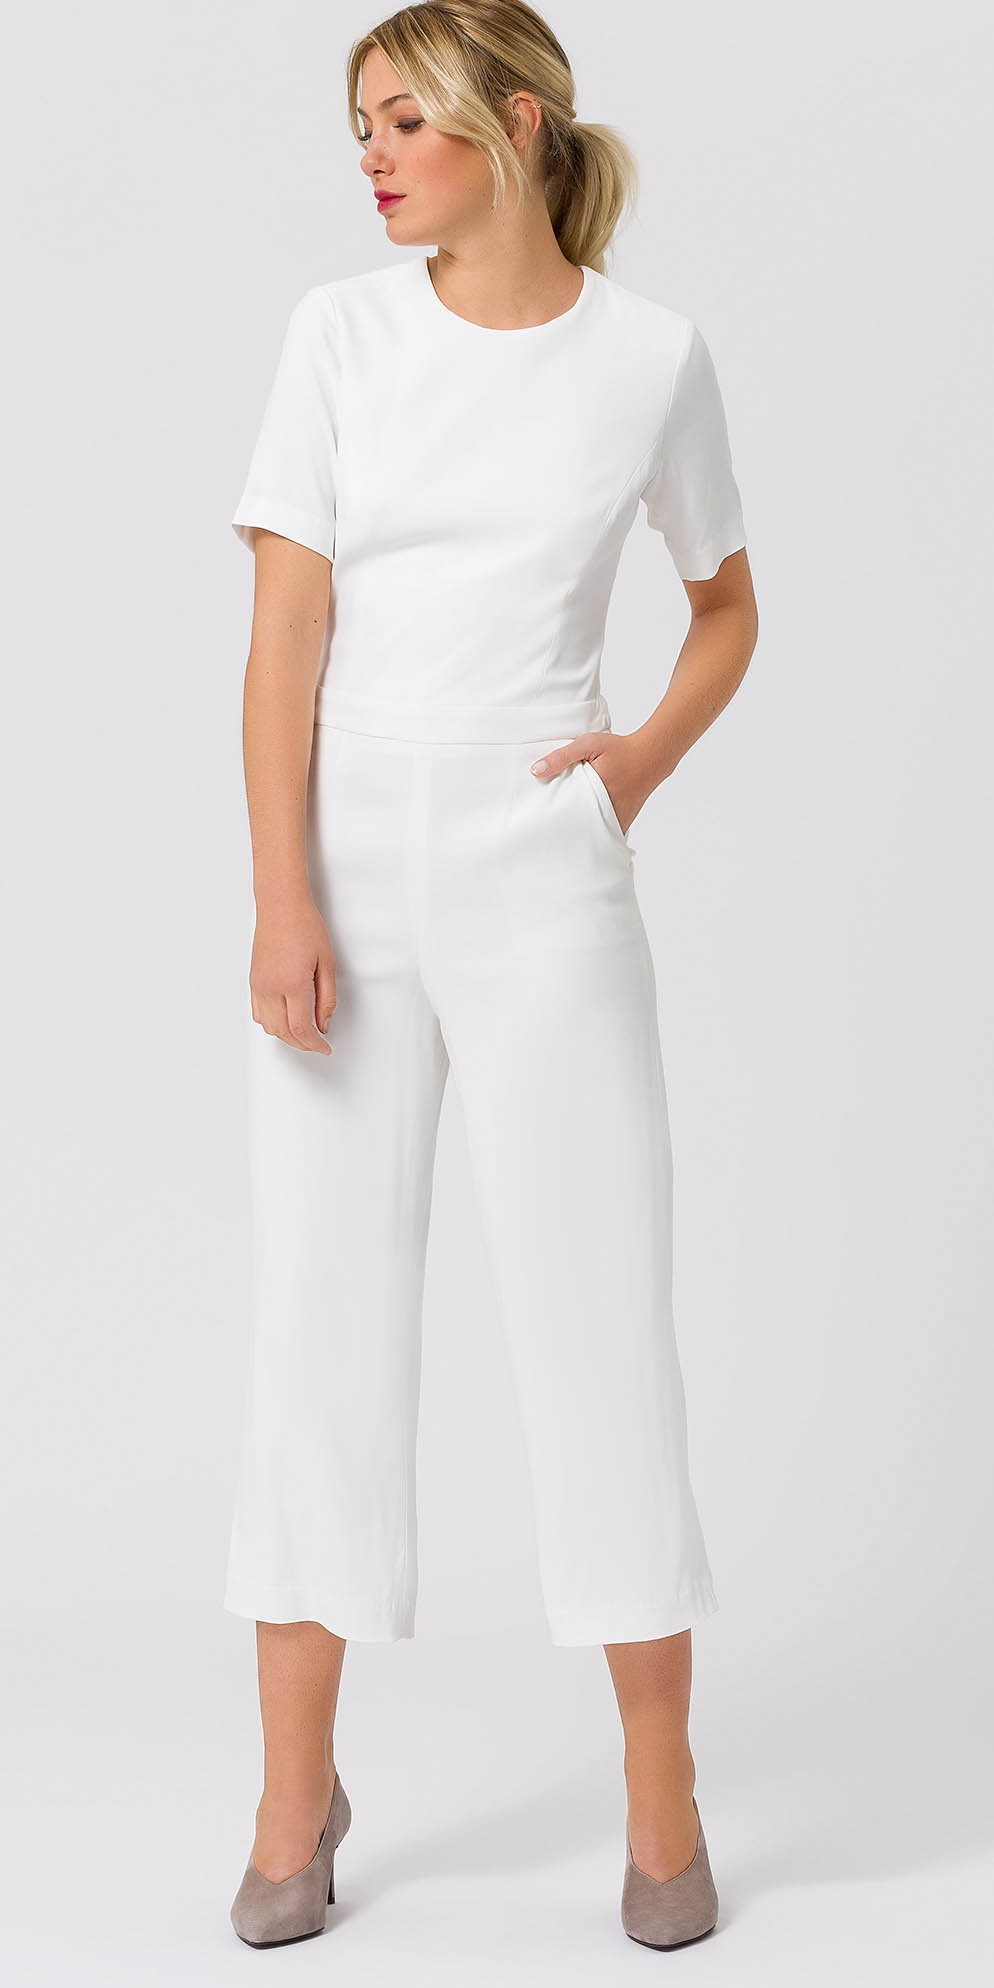 white-culottes-pants-white-top-mono-pony-tan-shoe-pumps-spring-summer-blonde-lunch.jpg